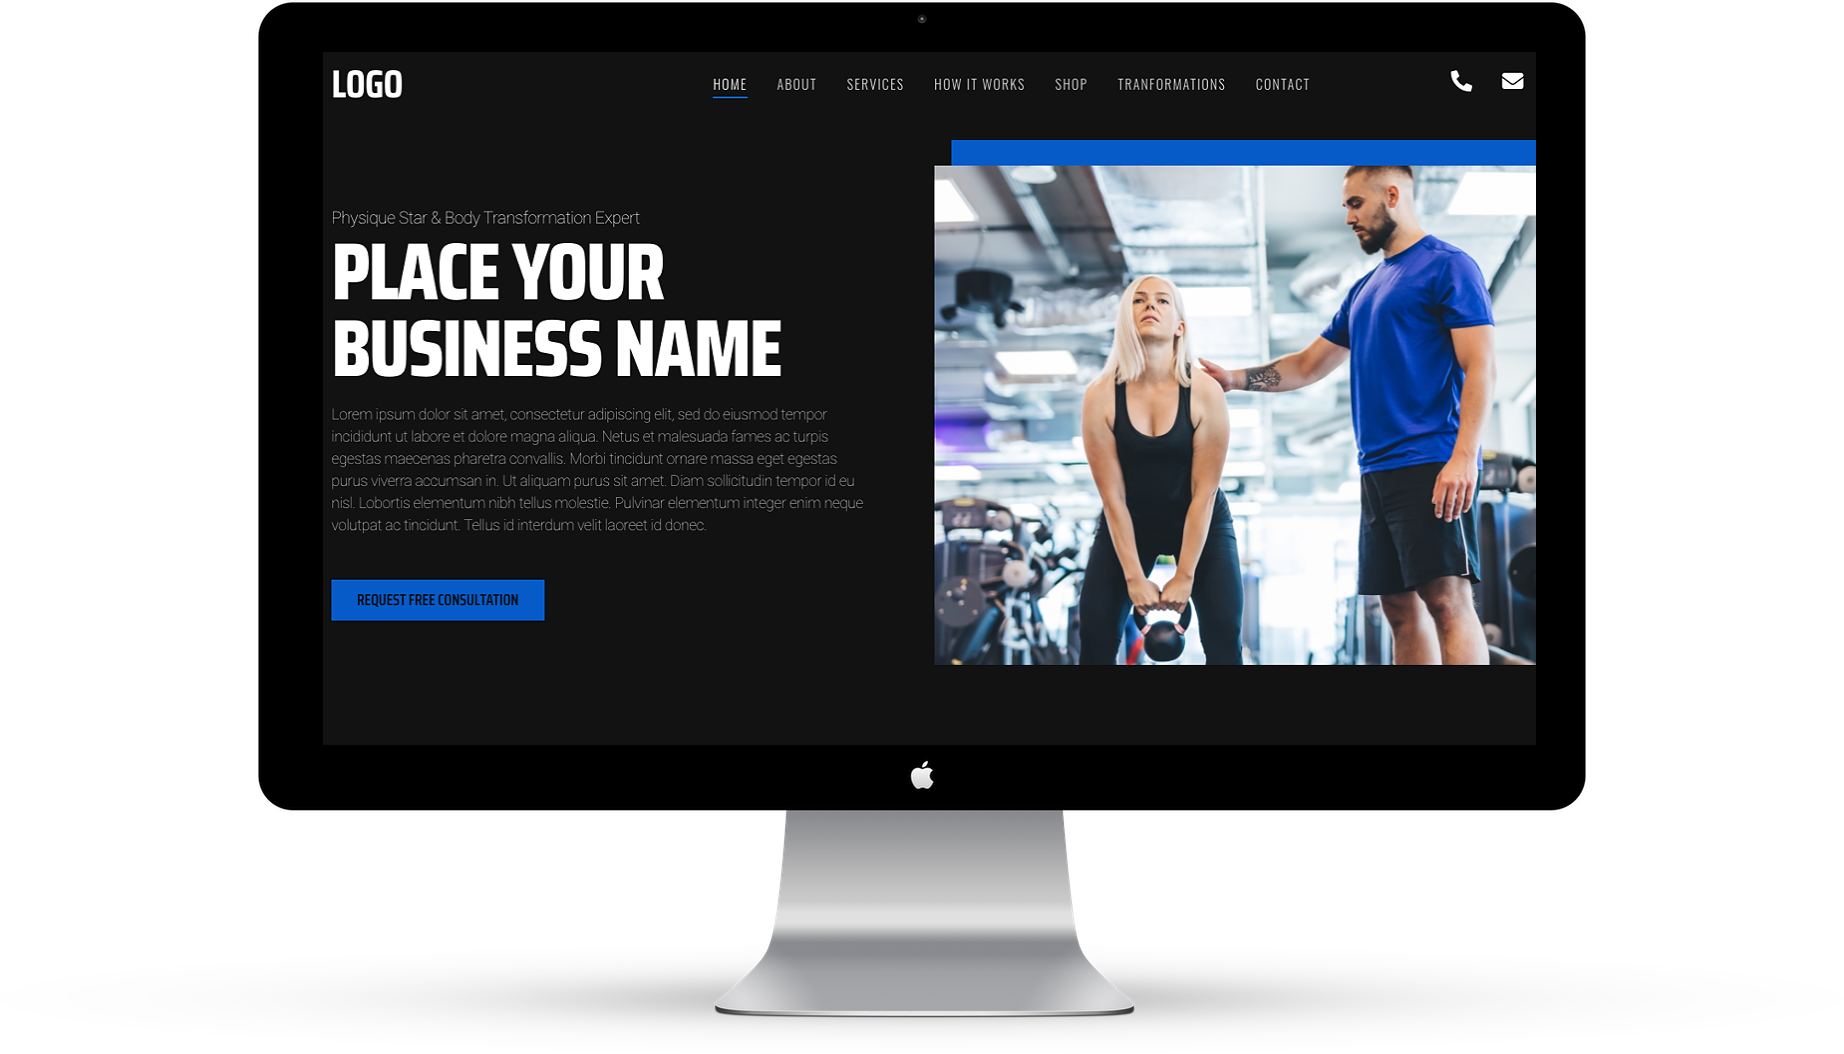 This is an image of Femaile fitness website design 1